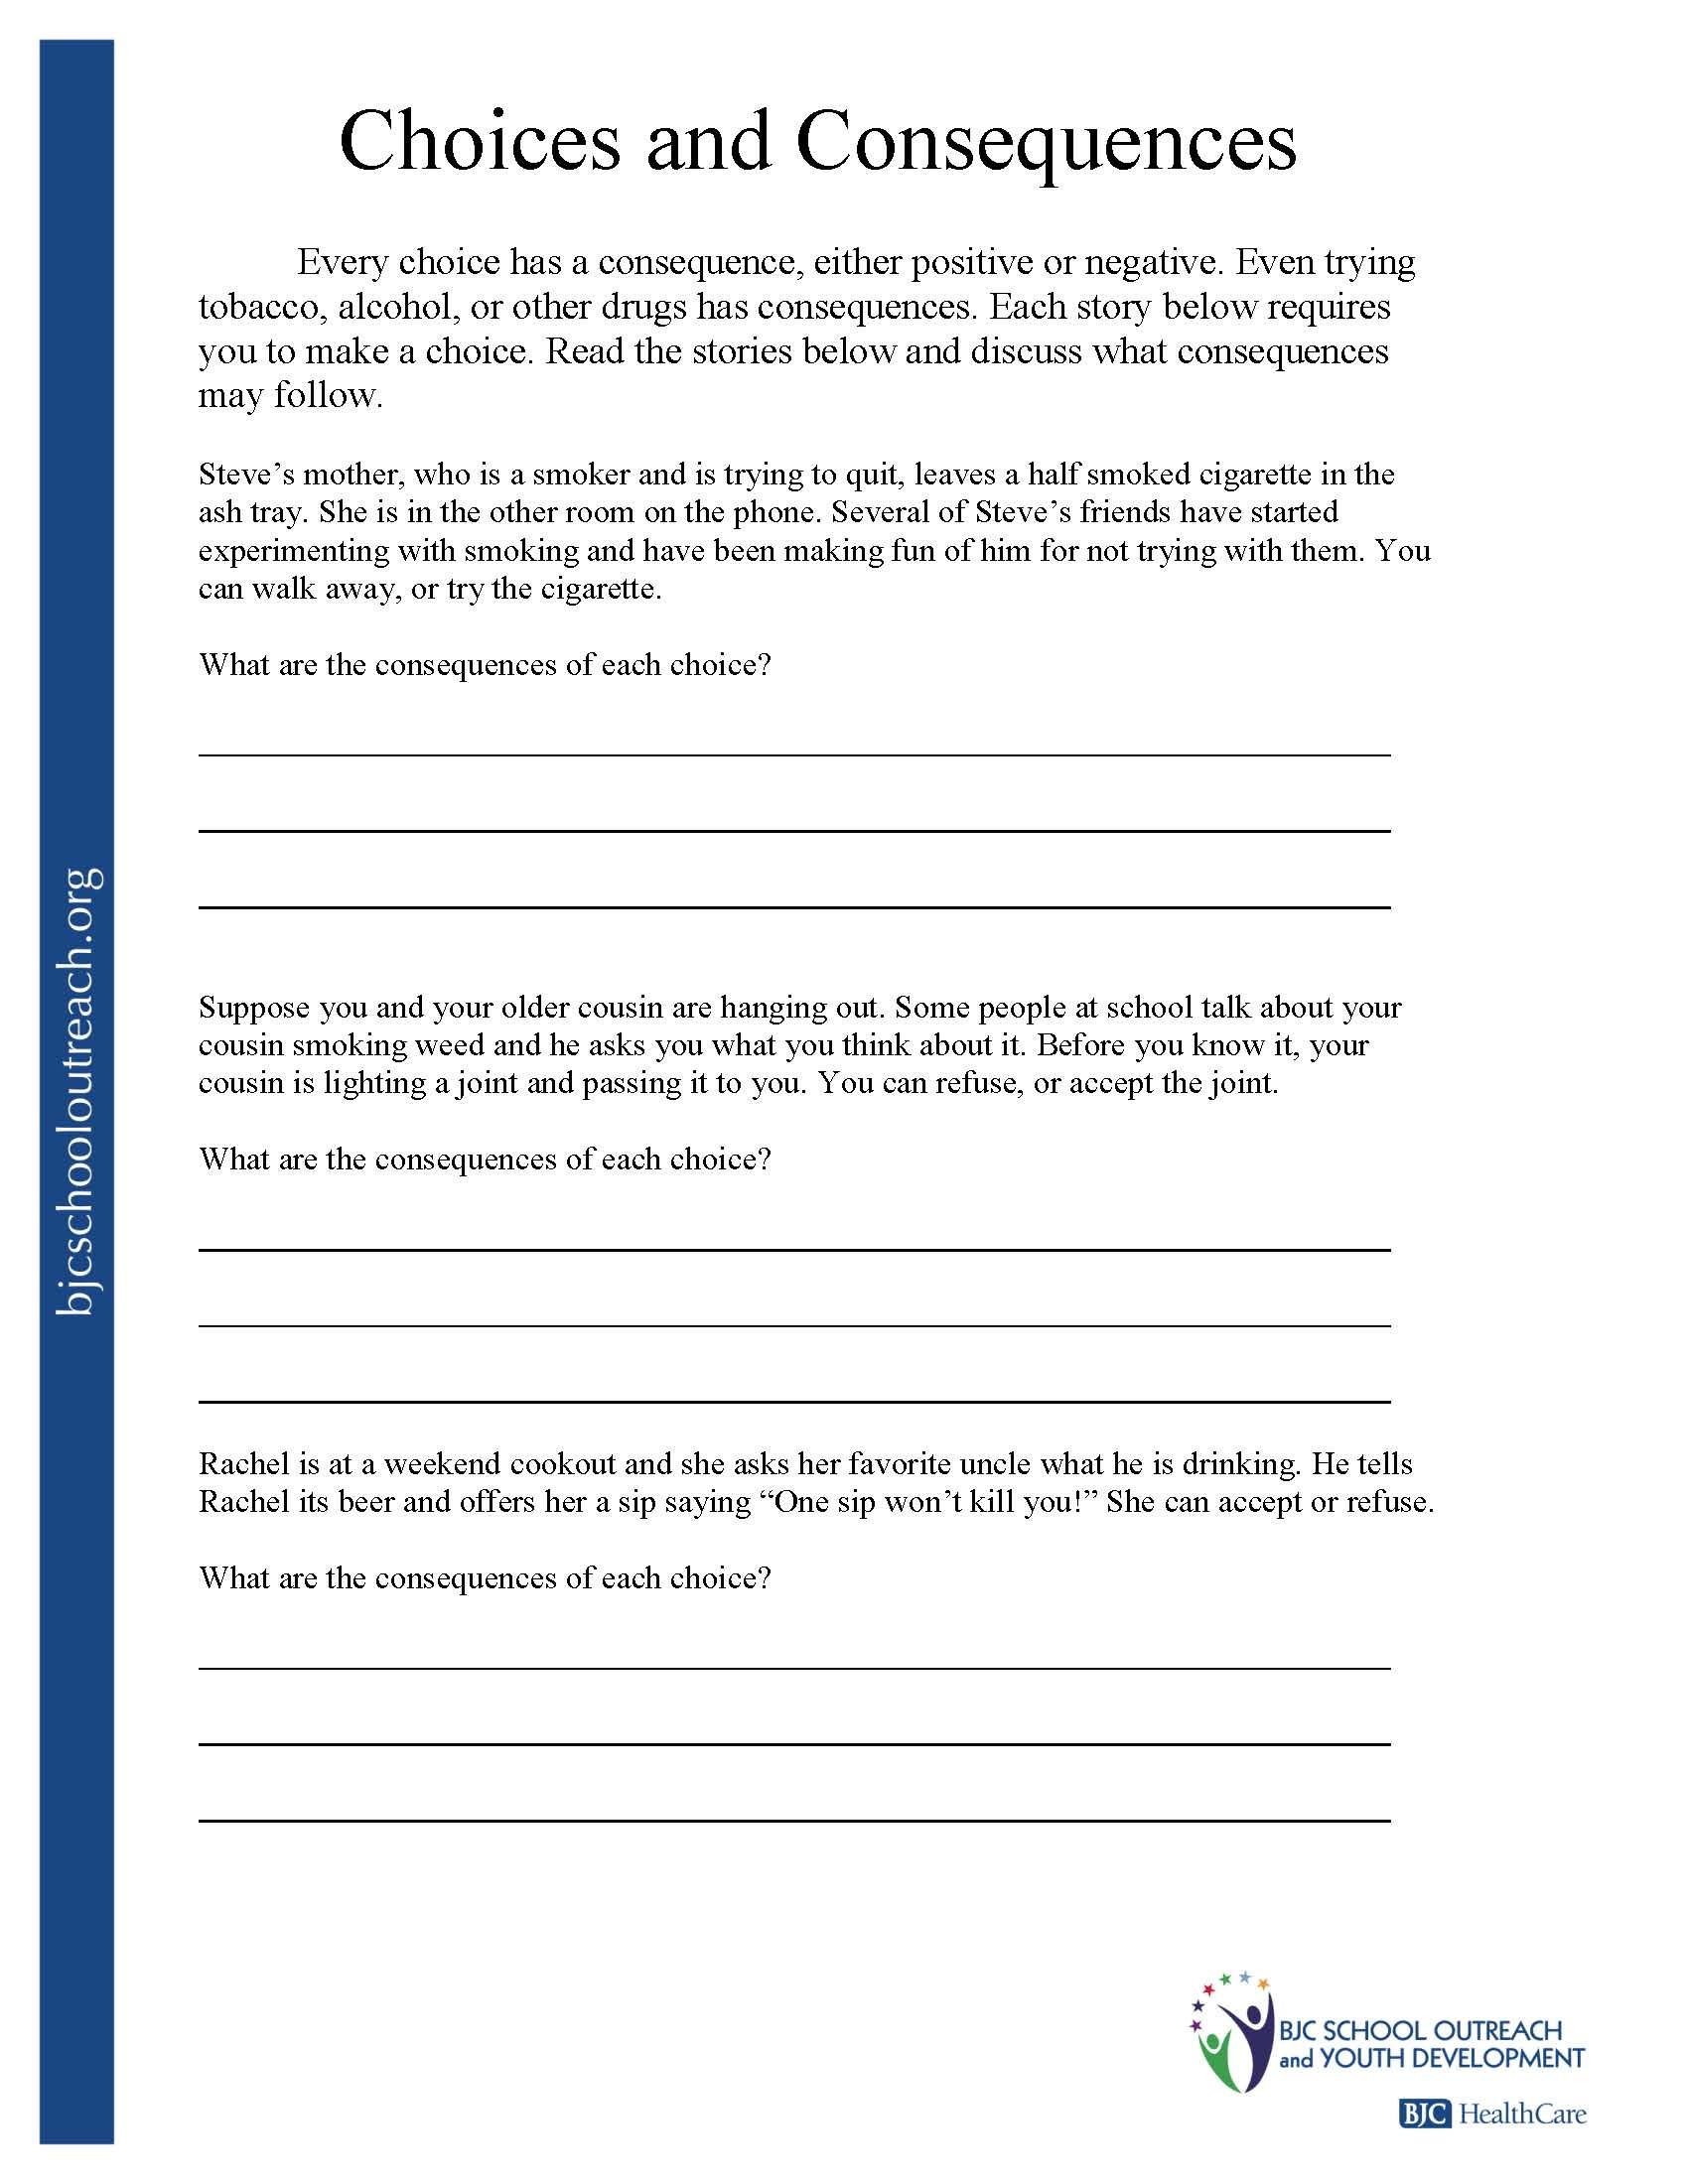 Worksheets Decision Making Worksheets making good choices worksheets davezan smart davezan